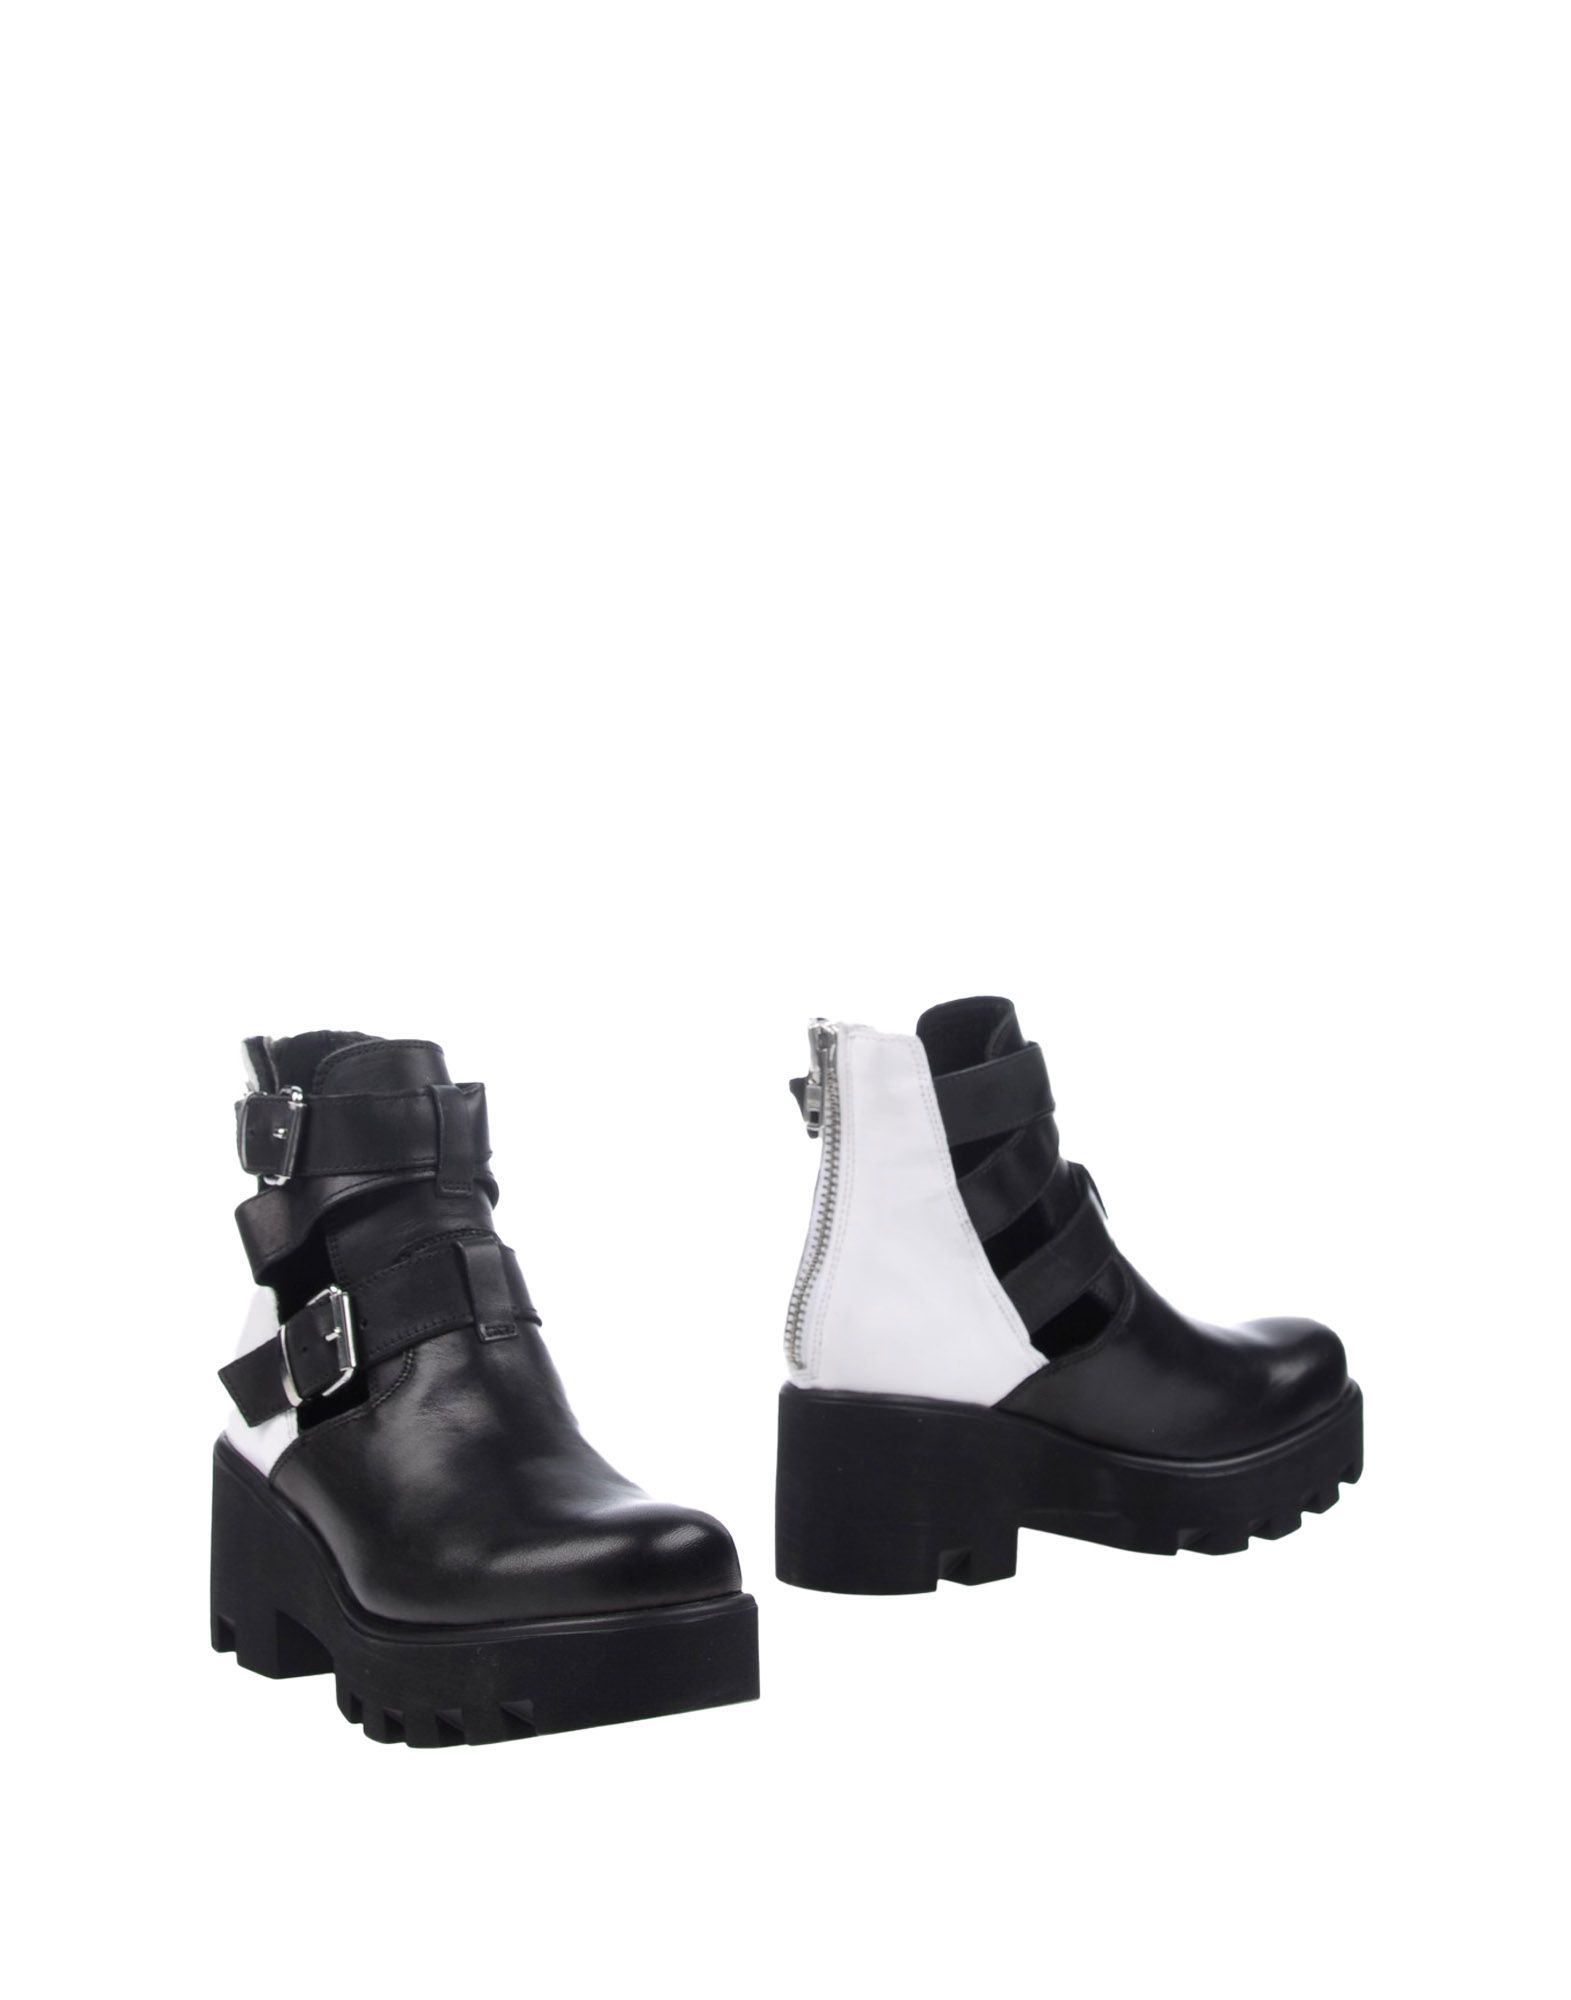 Cult Ankle Boot - Women Cult Ankle Boots Boots Ankle online on  United Kingdom - 11297533IS 44eb8b